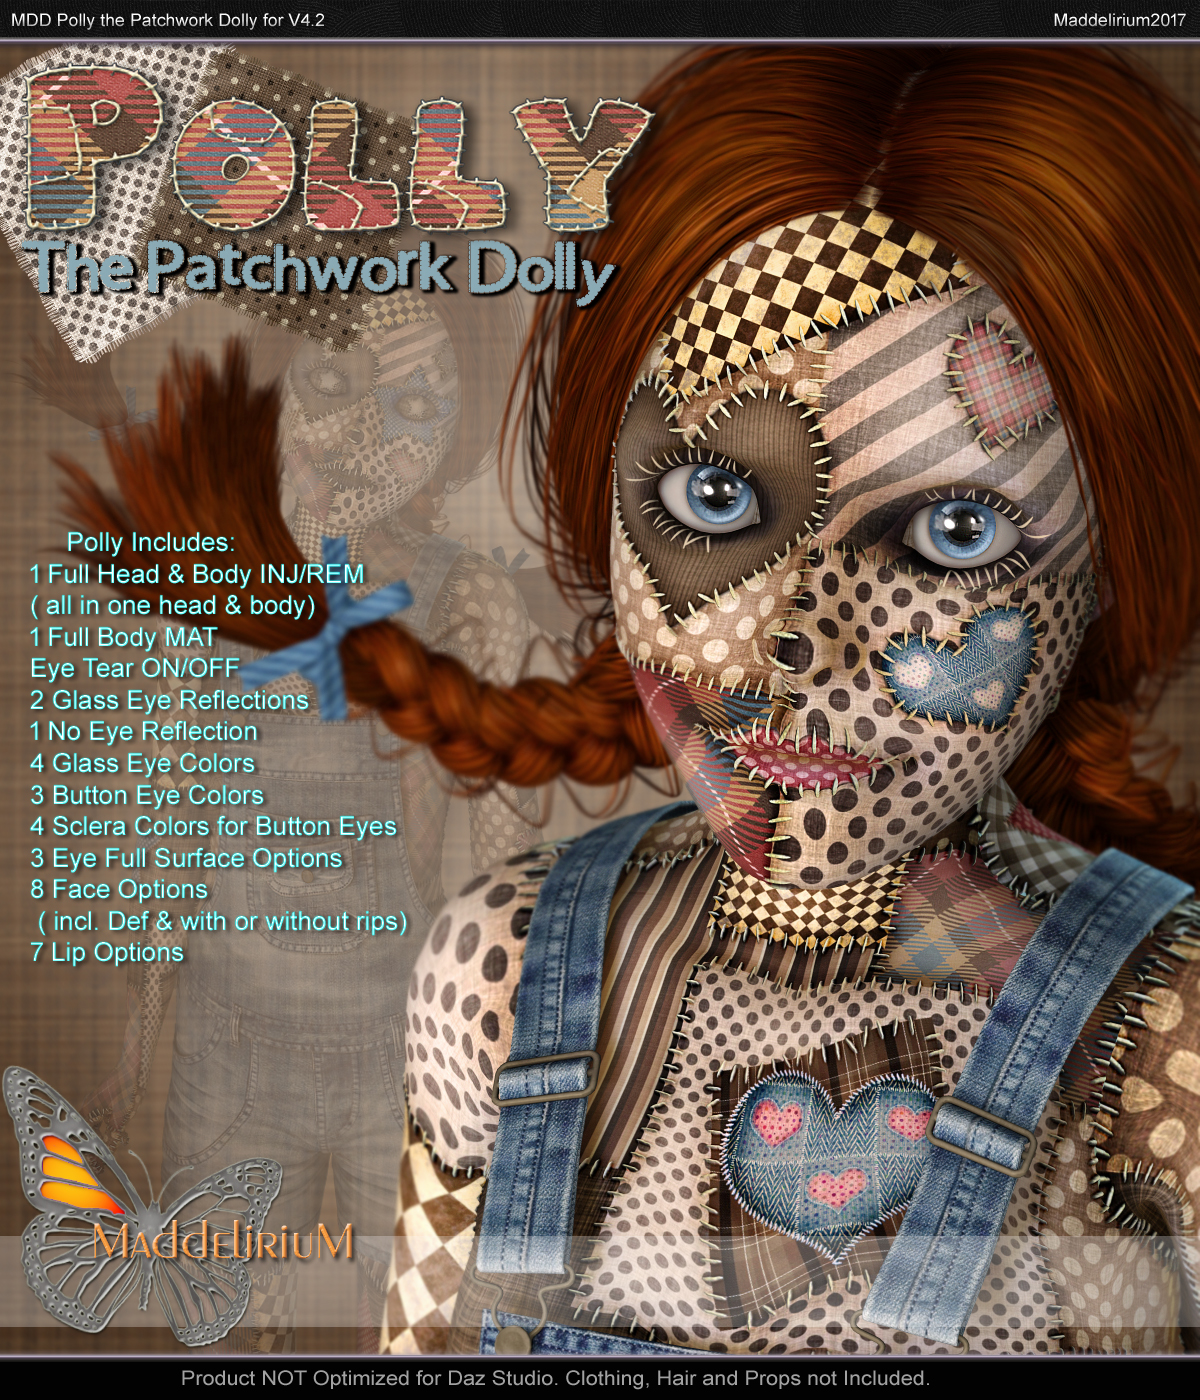 MDD Polly the Patchwork Dolly for V4.2